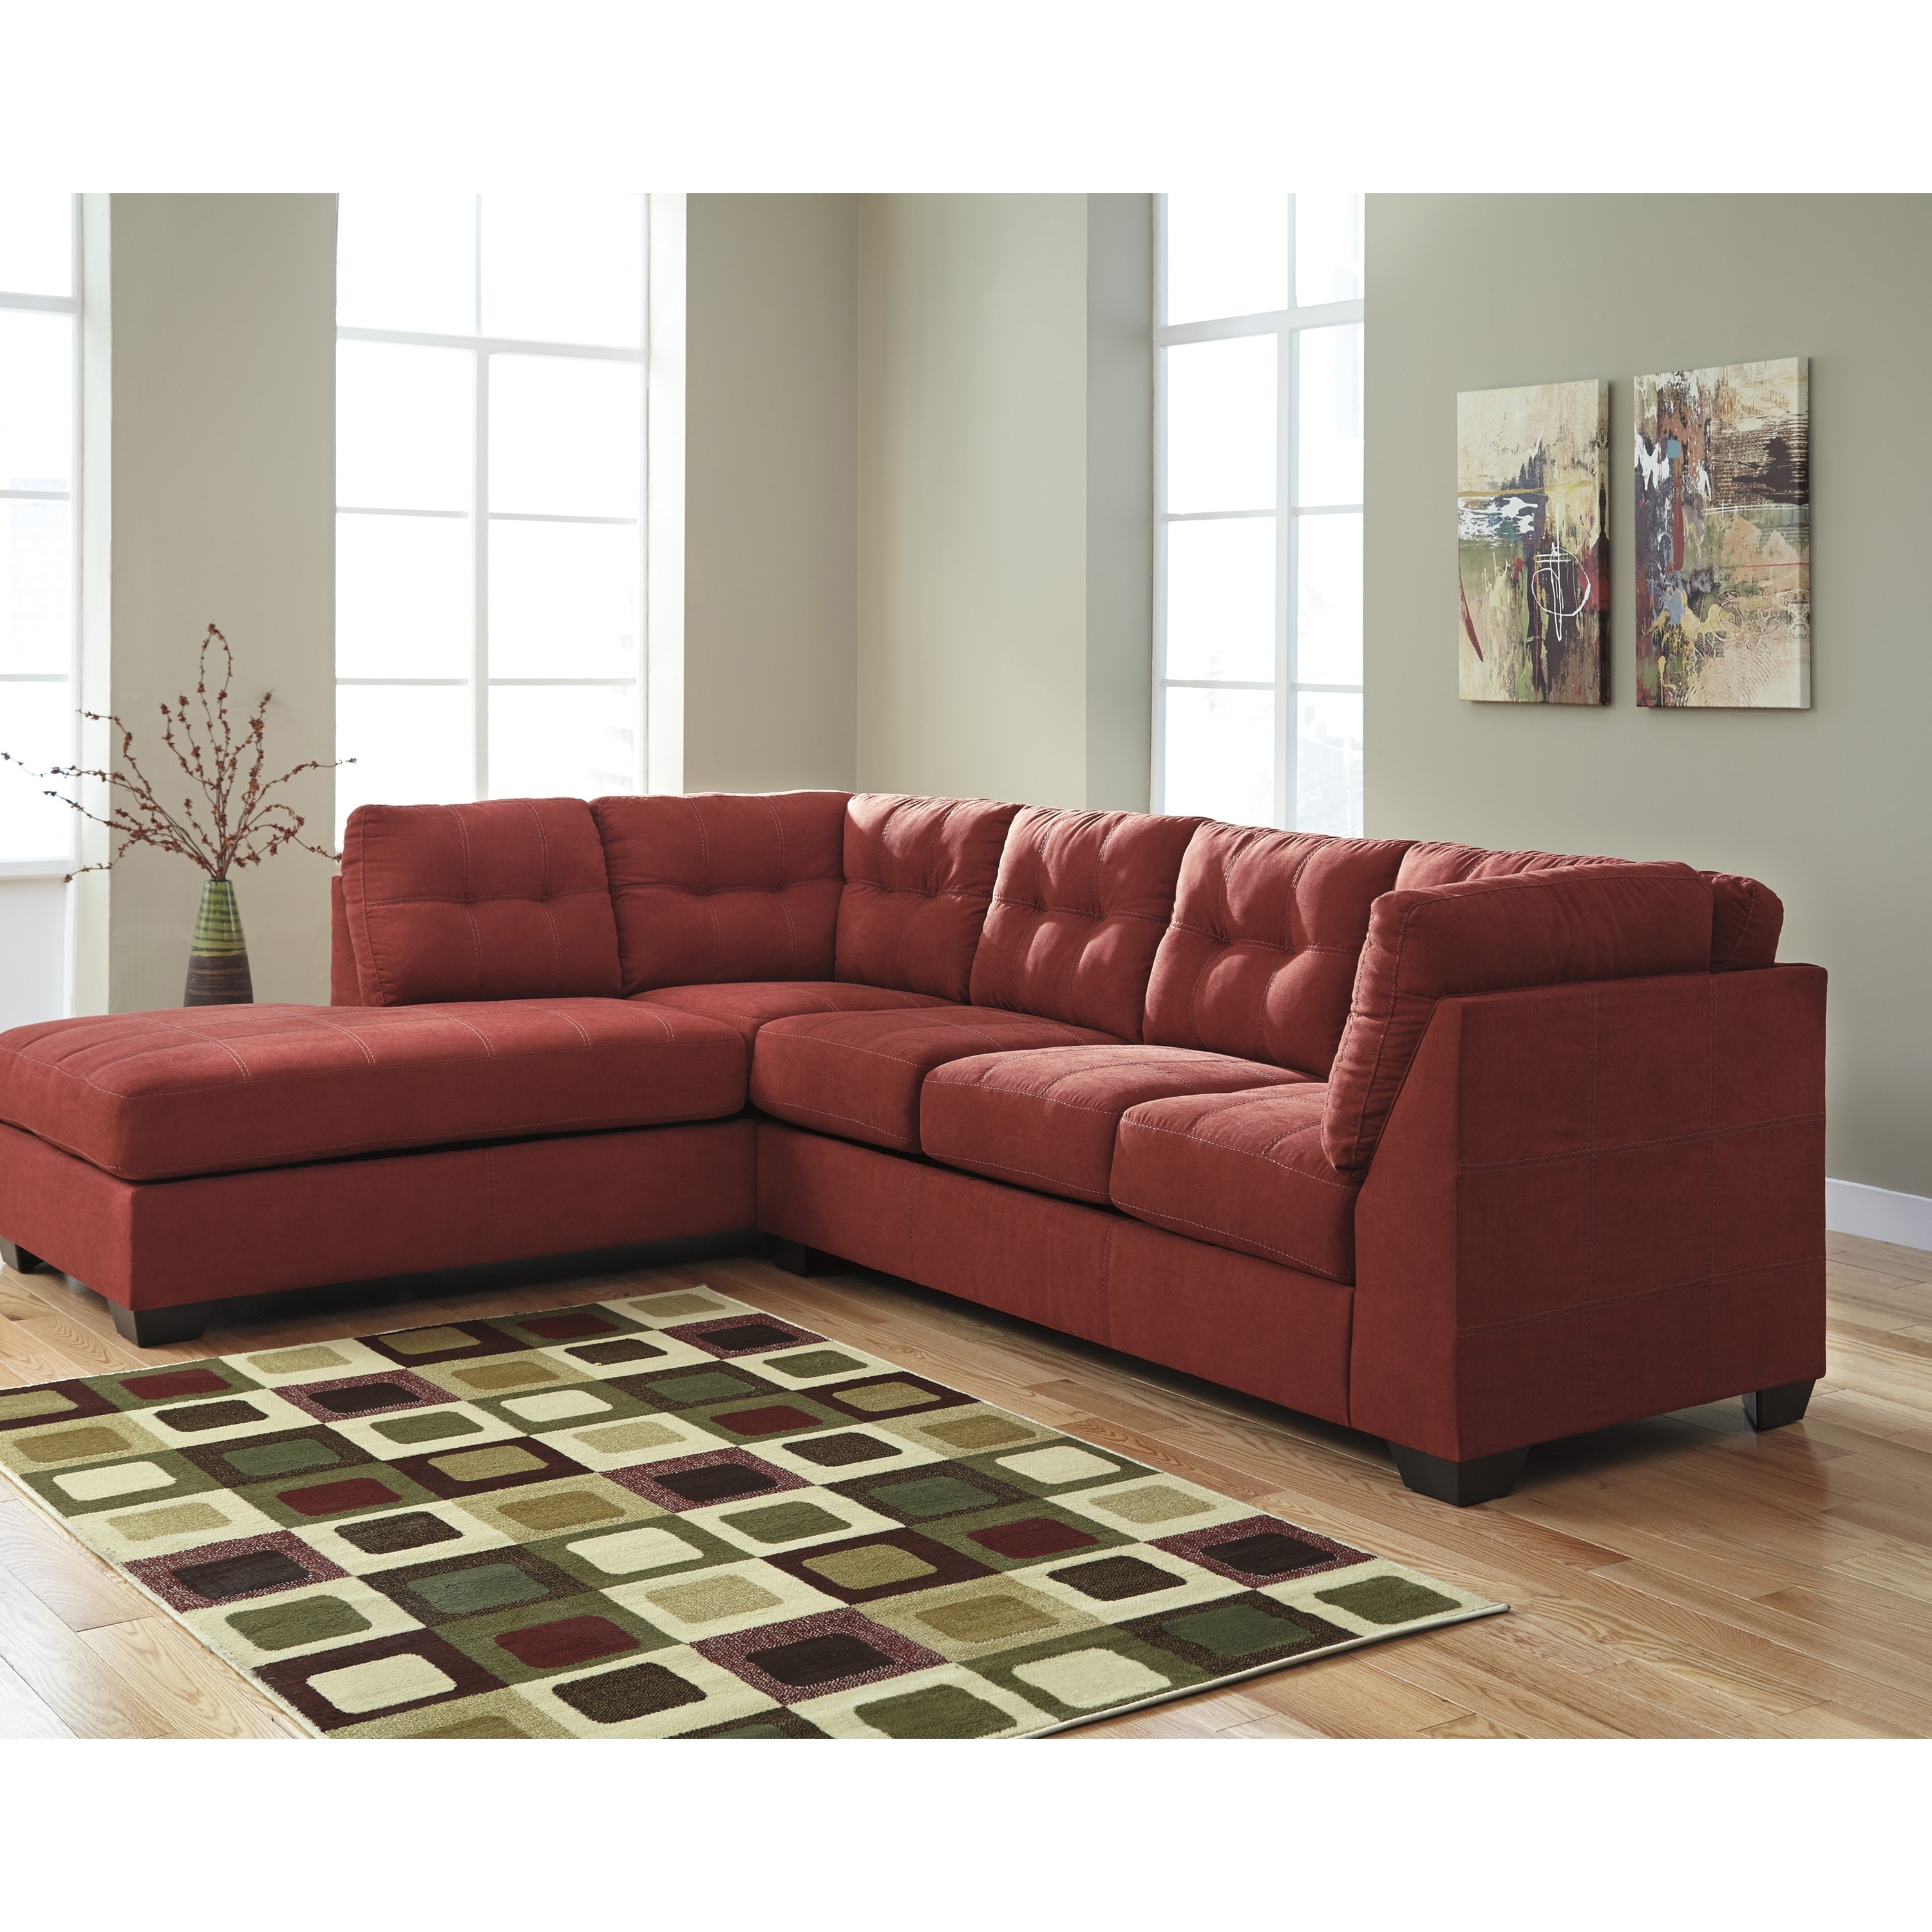 Sectional Sofas For Less | Overstock With Regard To Leather Sectional Sofas (View 10 of 10)